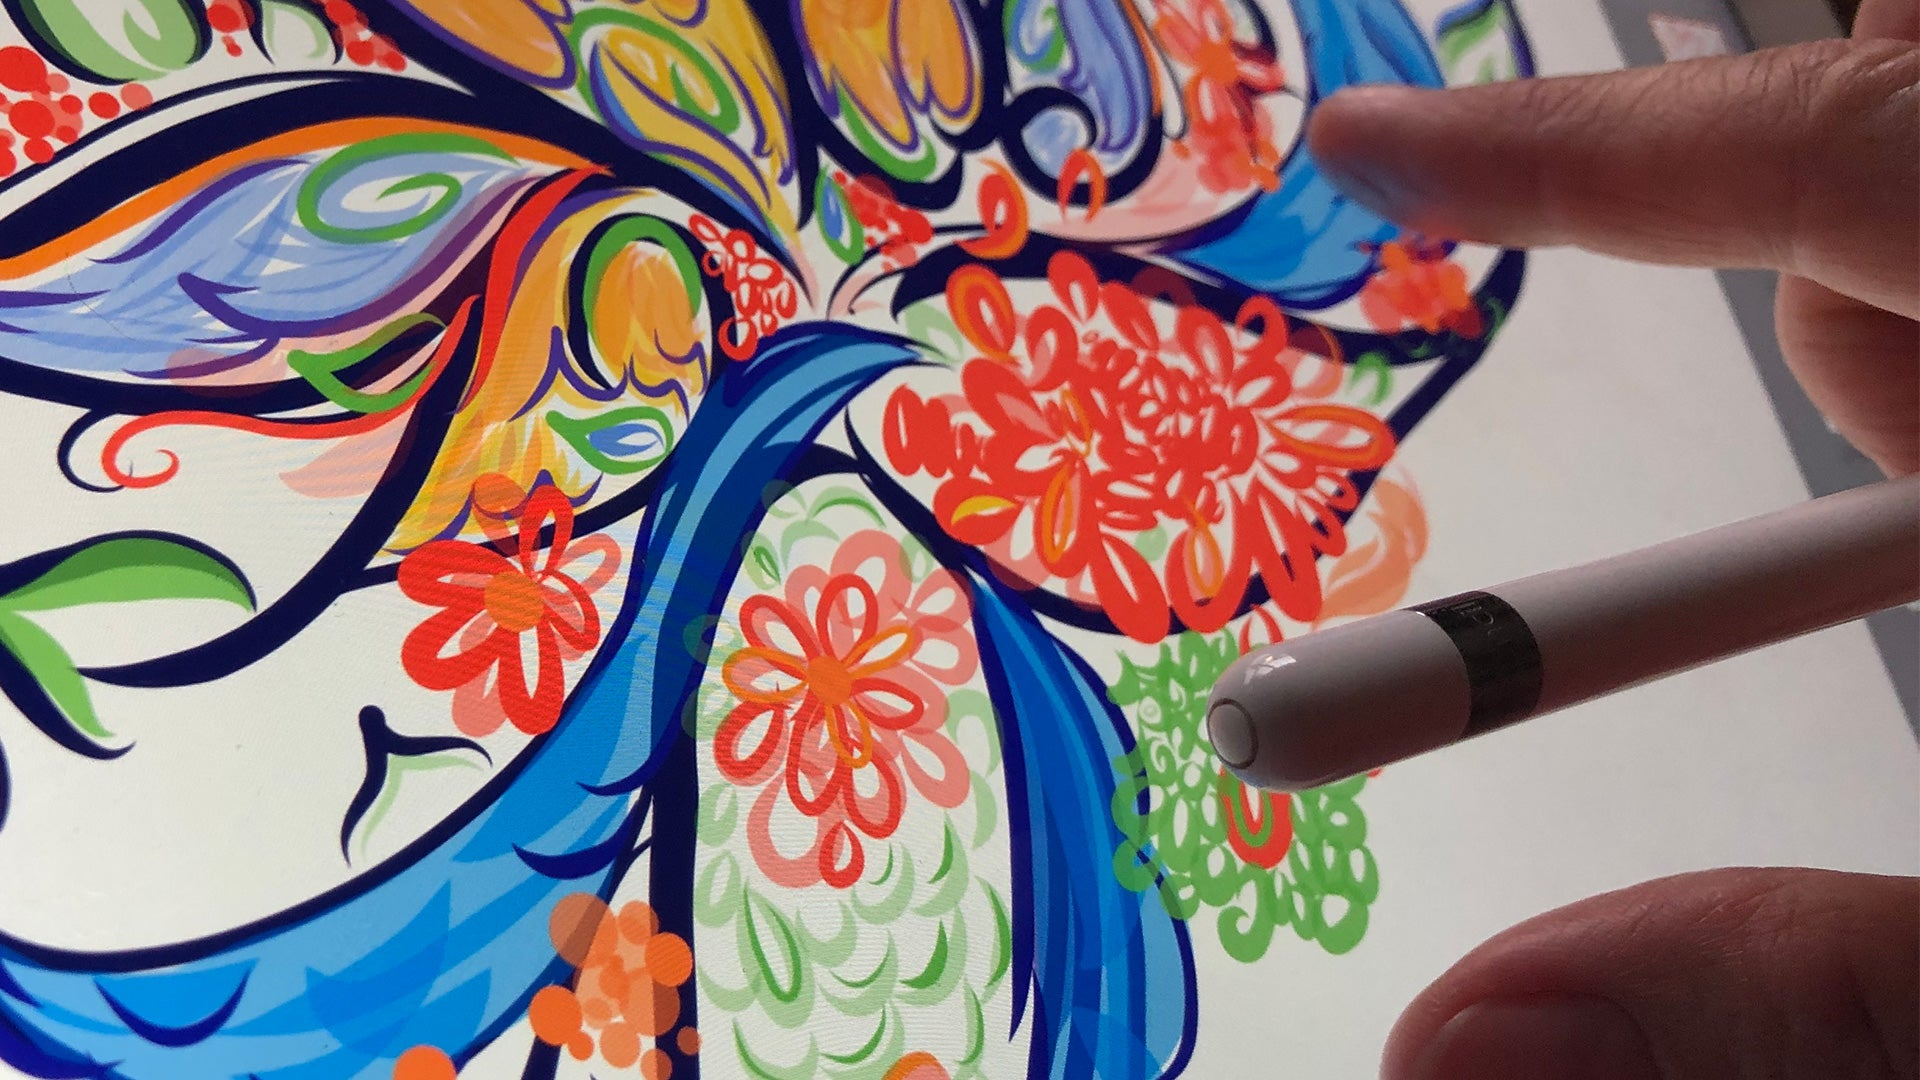 The 9 7 inch ipad 6th generation is still a great option for artists